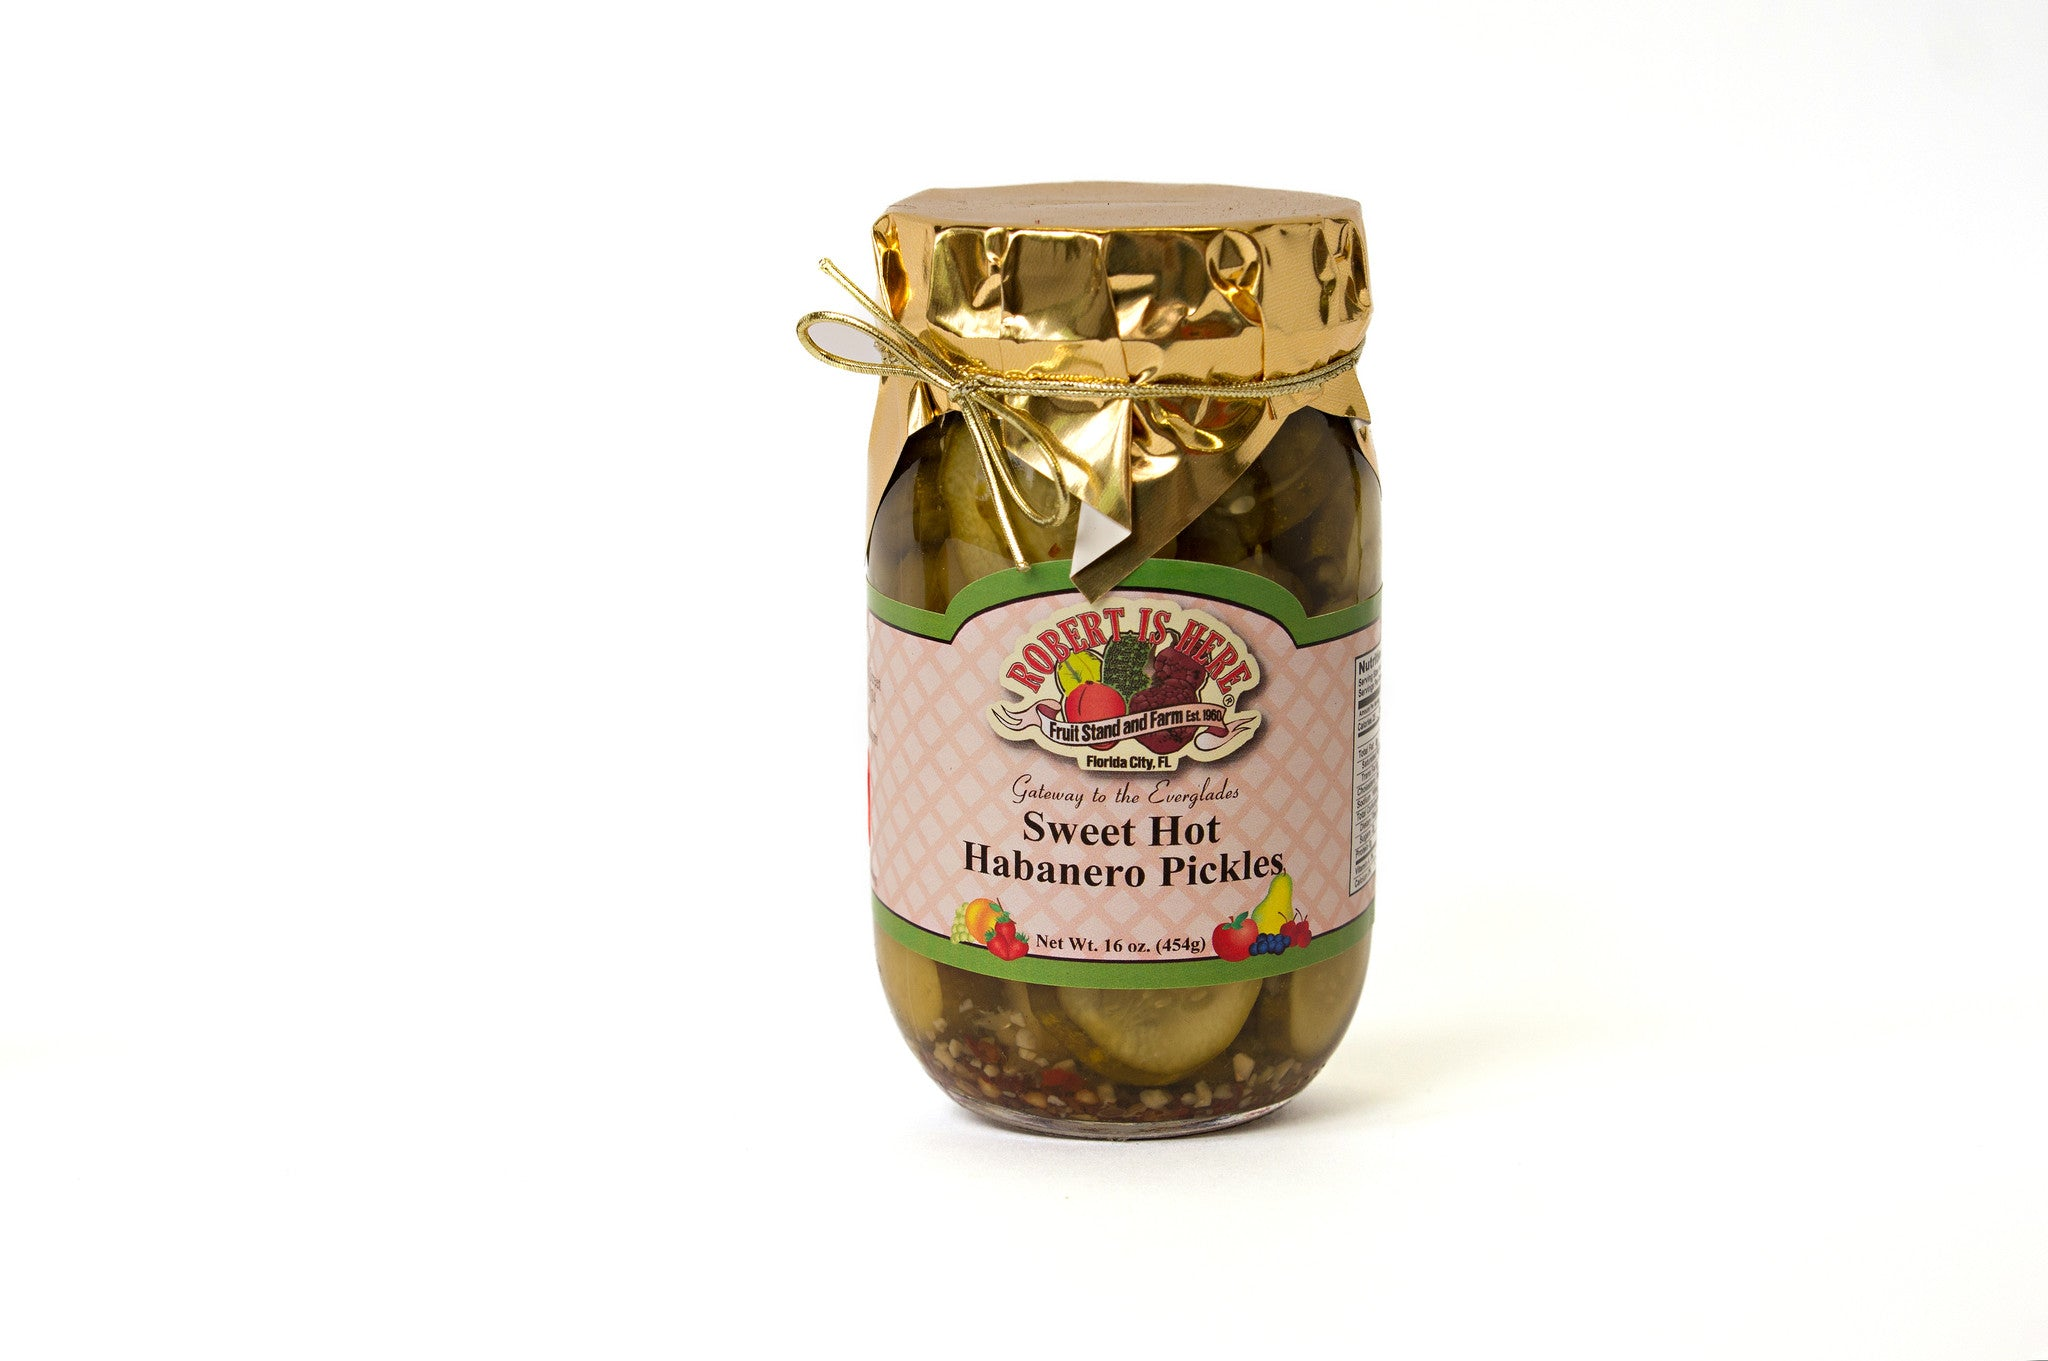 Sweet Hot Habanero Pickles